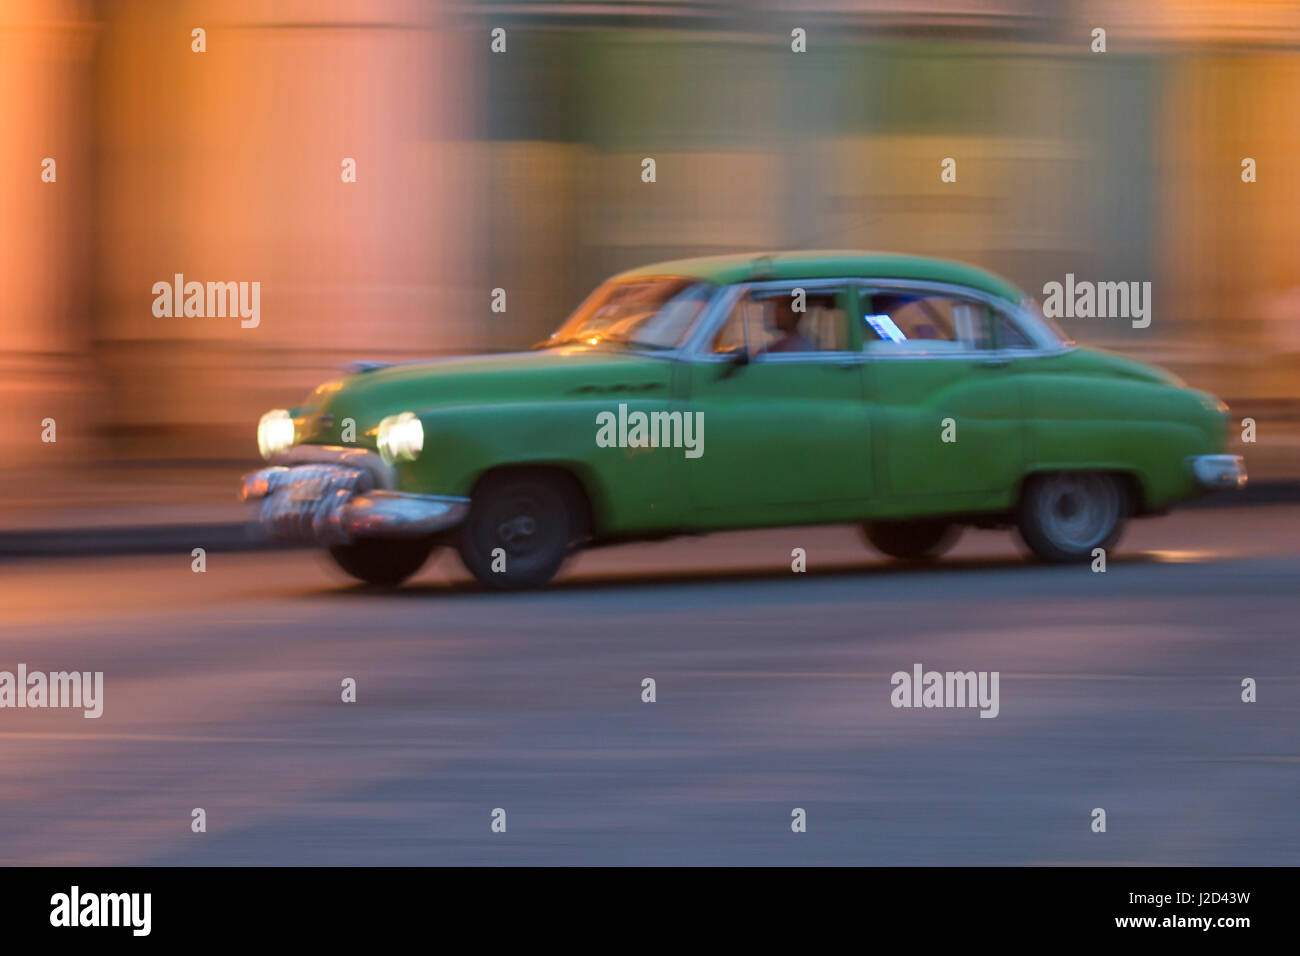 Cuba, Havana. 1950 Buick. collectible, vintage cars along Havana's old city center (Editorial Use Only) - Stock Image